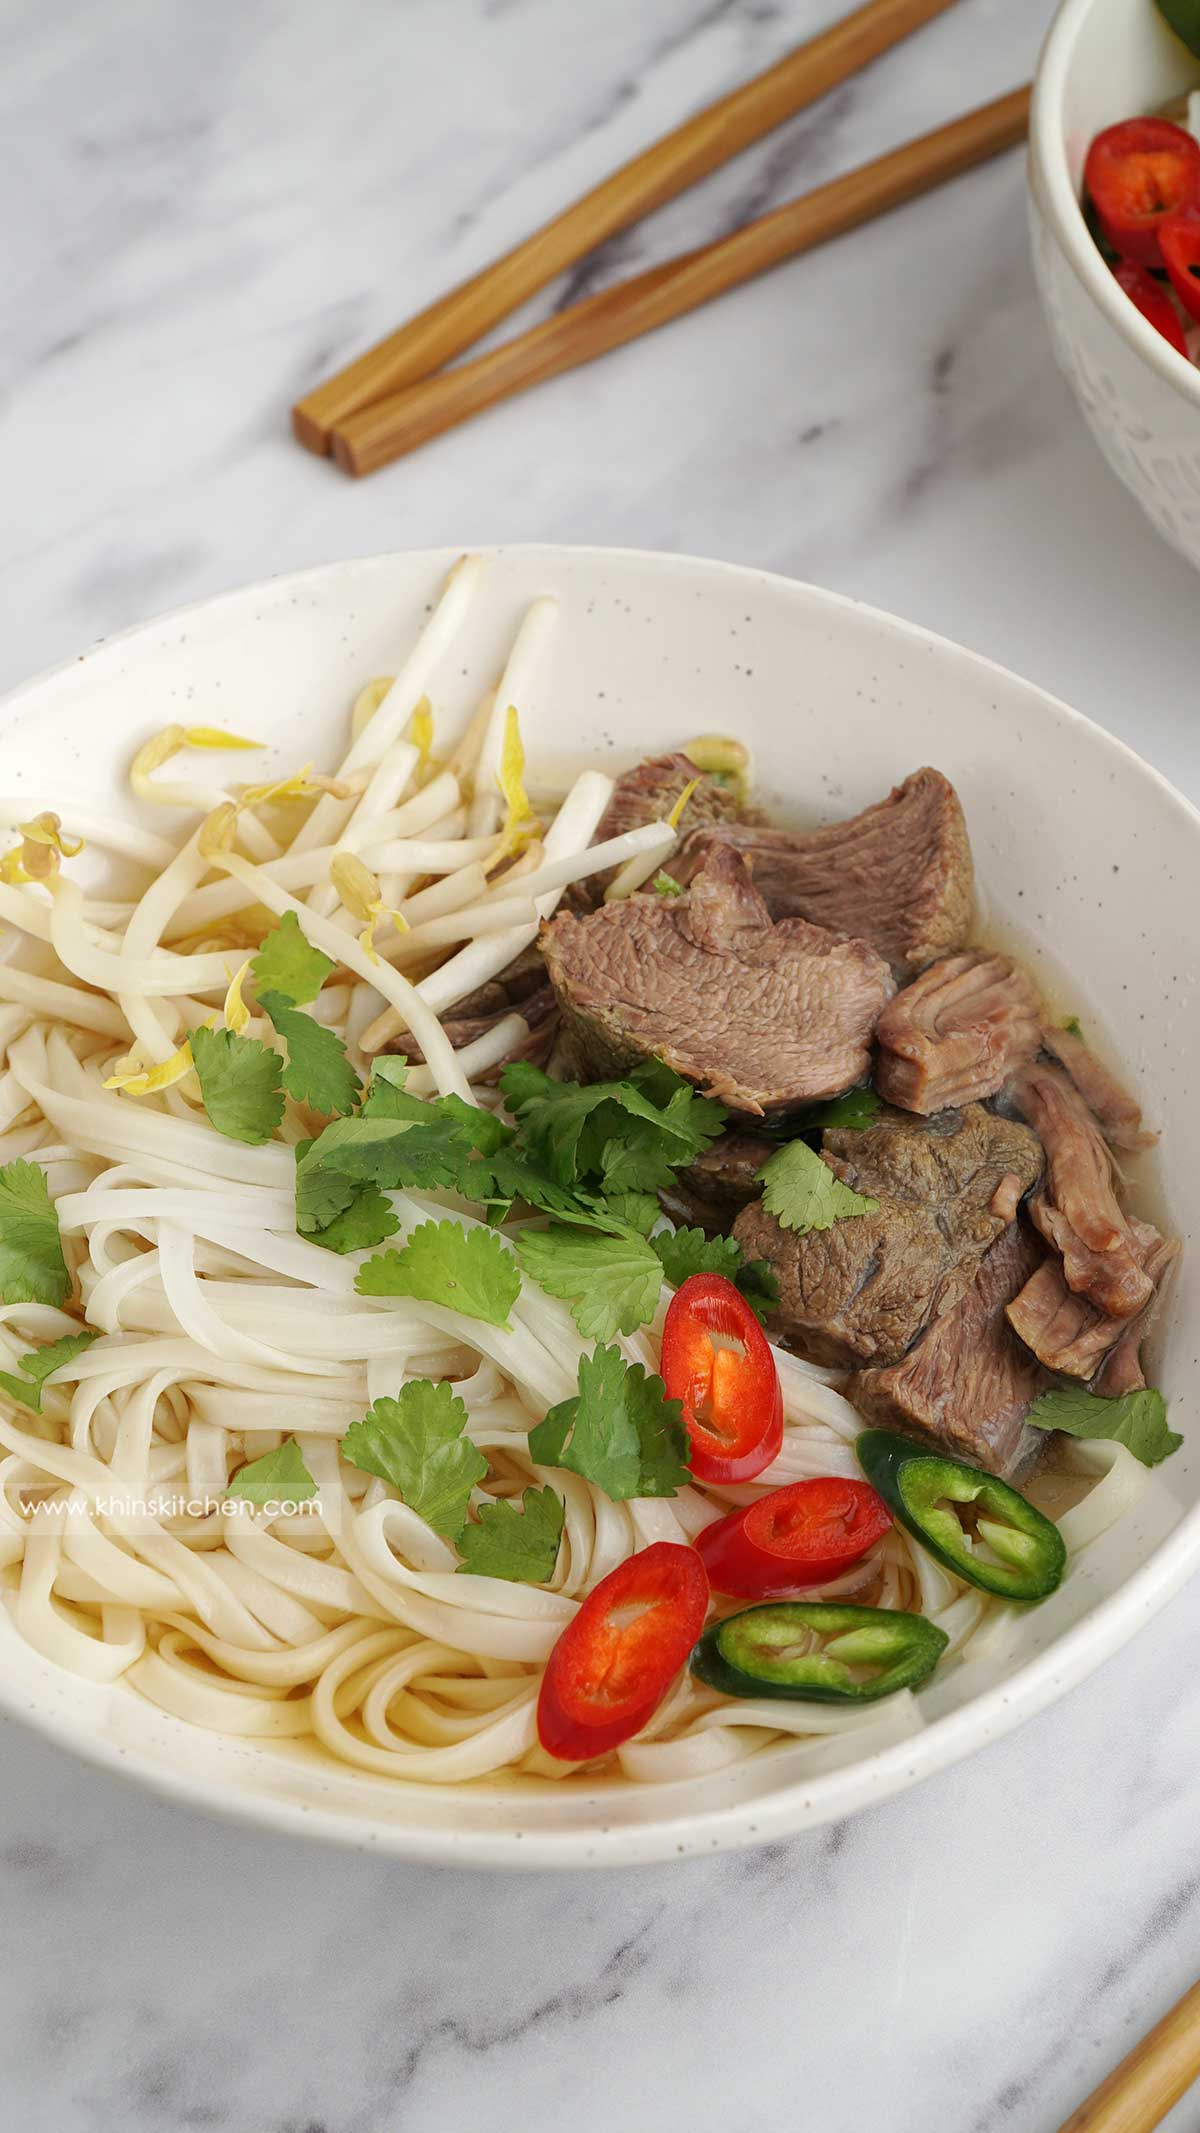 close up view of beef noodles soup in the white bowl.